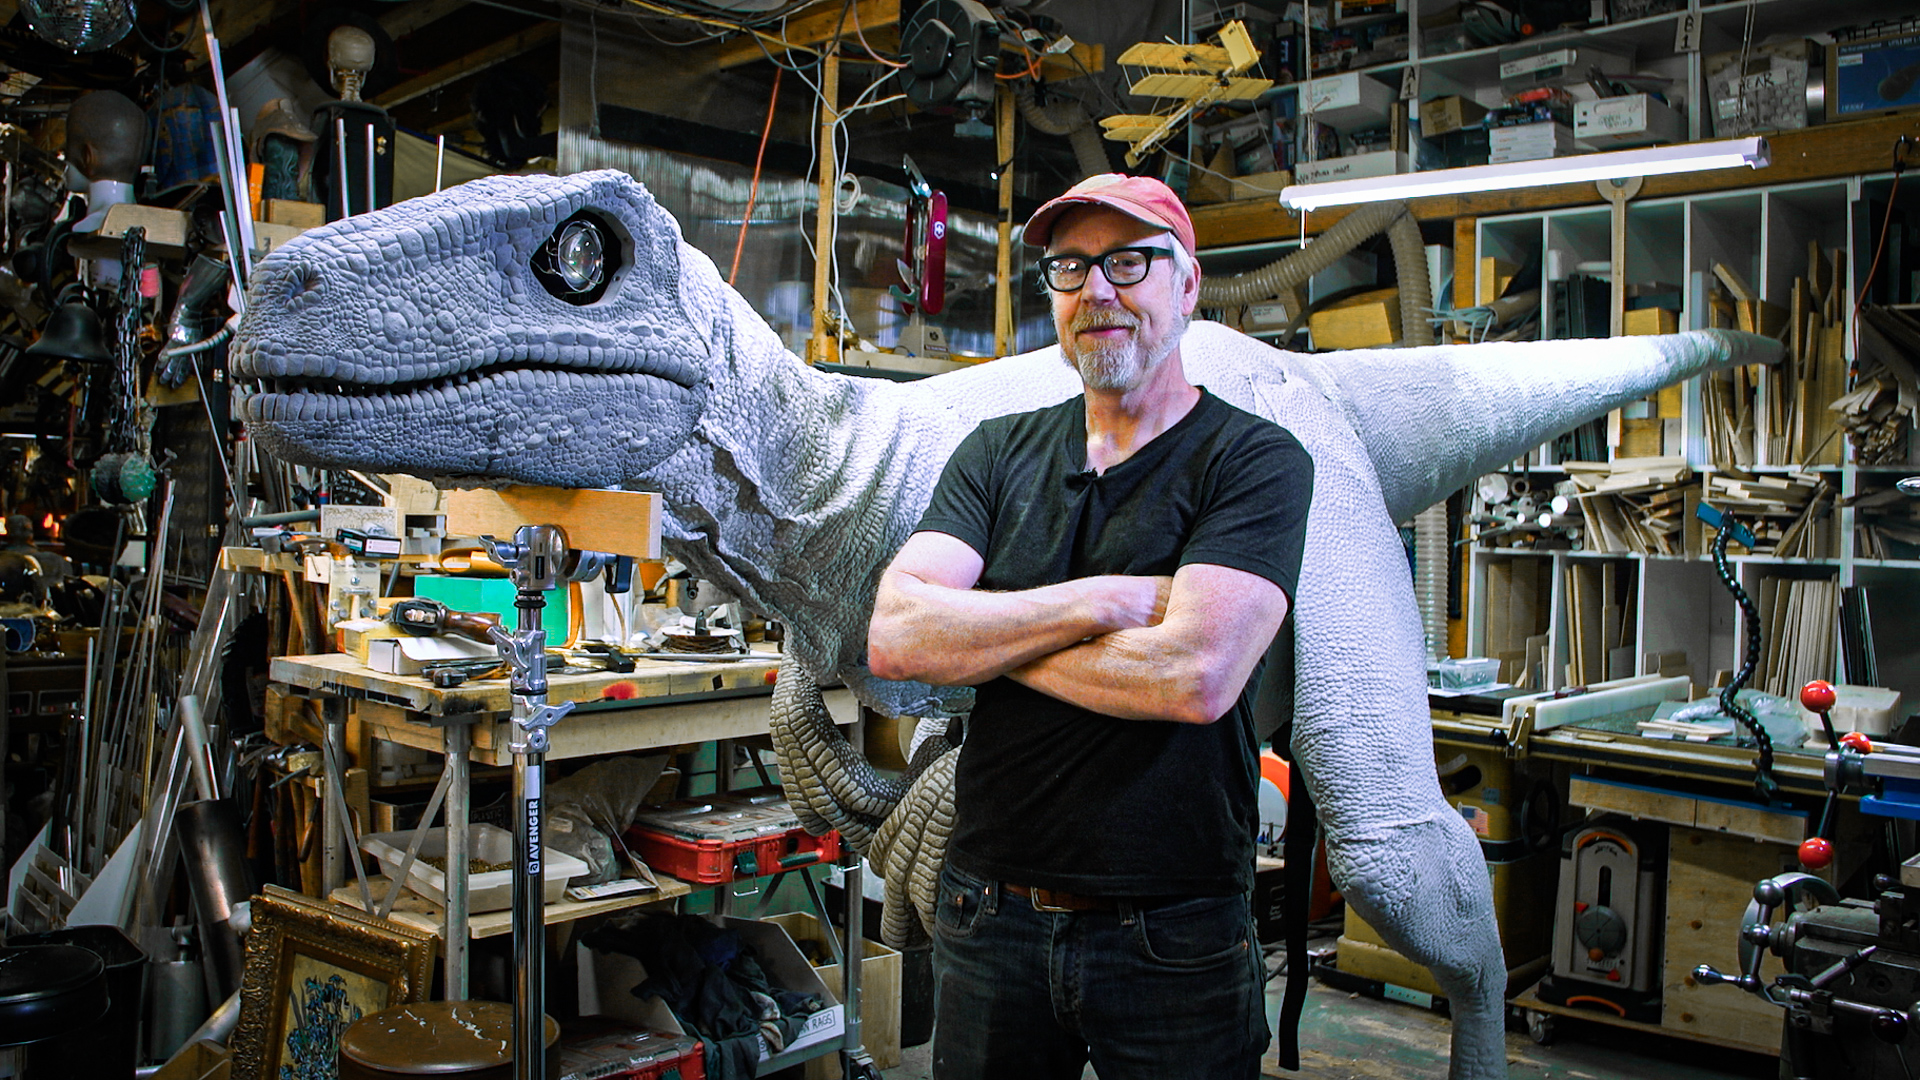 Adam Savage's One Day Builds: Life-Size Velociraptor Costume! - Tested